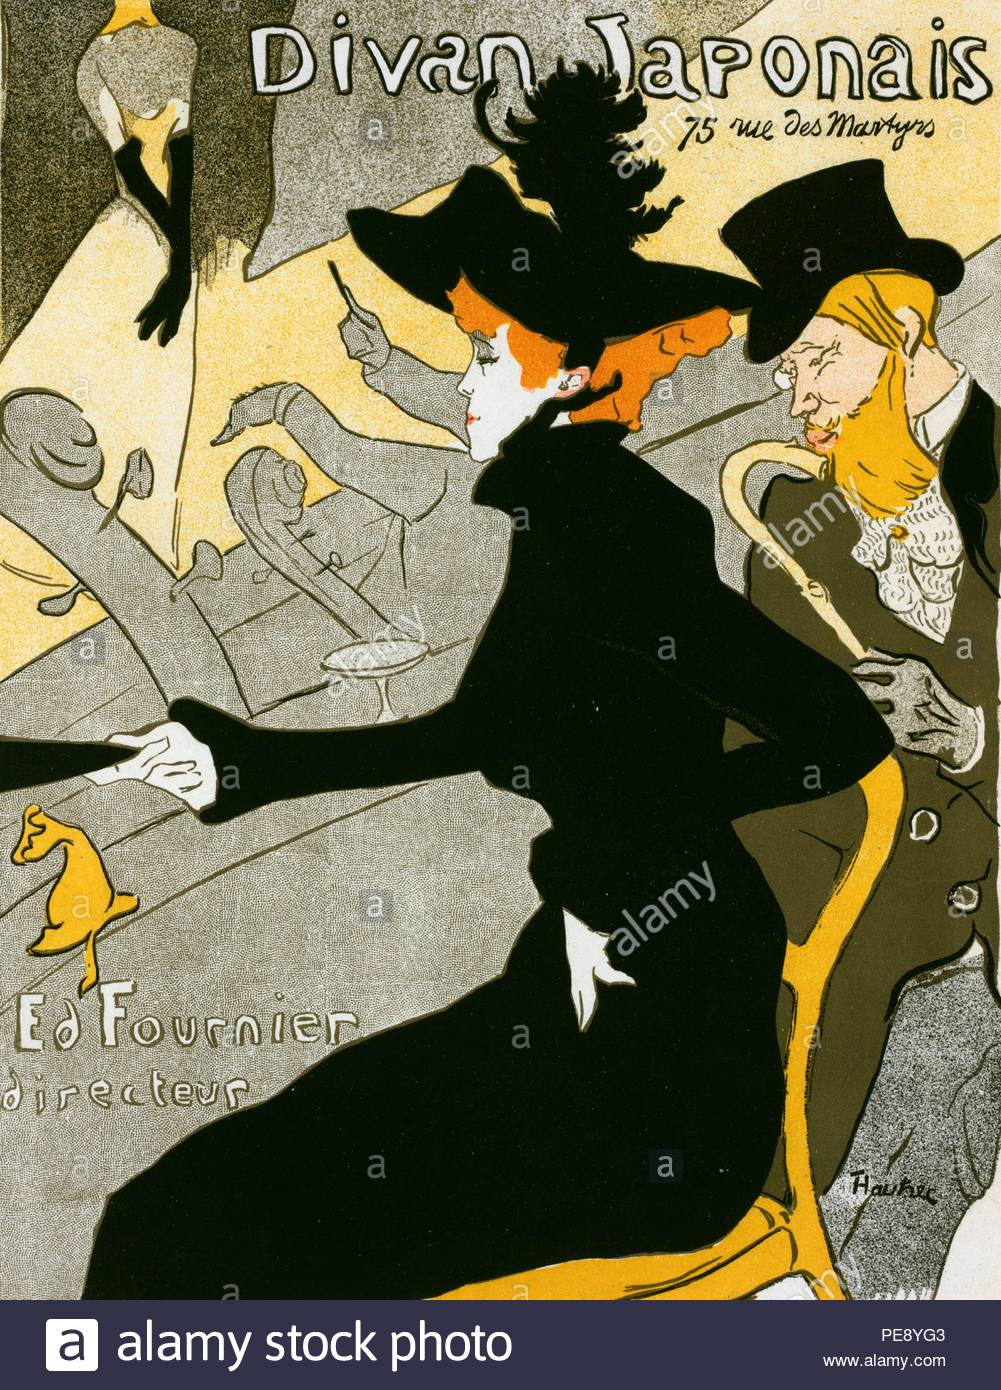 Poster for the concert Divan Japonais. Toulouse-Lautrec, Henri de, 1864-1901, French painter, printmaker, draughtsman and illustrator. The theme is often the colourful and theatrical life of Paris in late 19th century France. - Stock Image